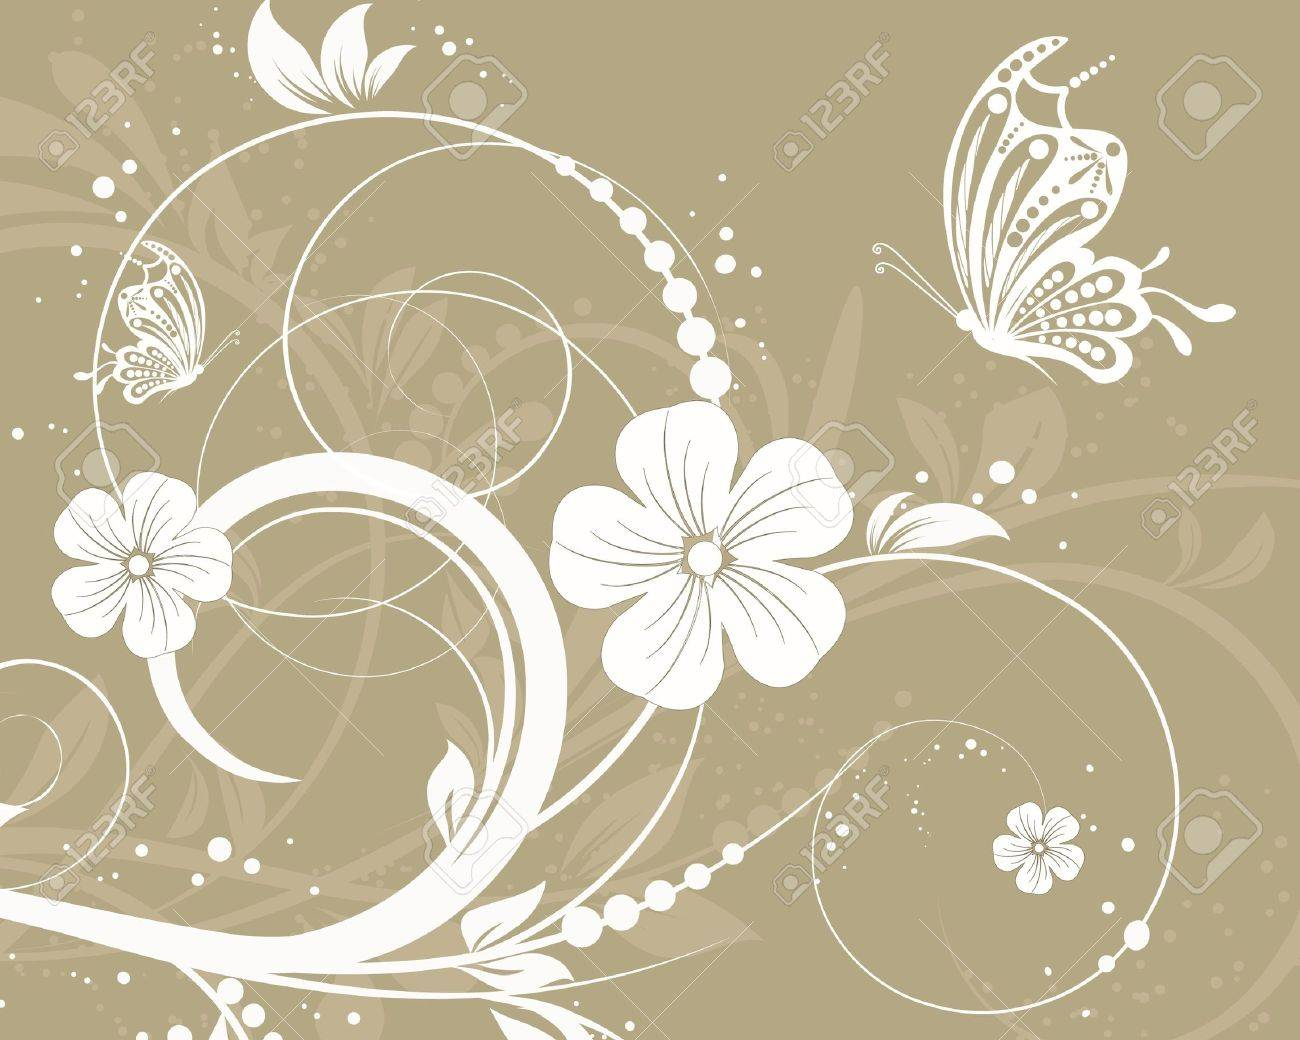 vector floral decorative abstract background with butterfly Stock Vector - 10033364